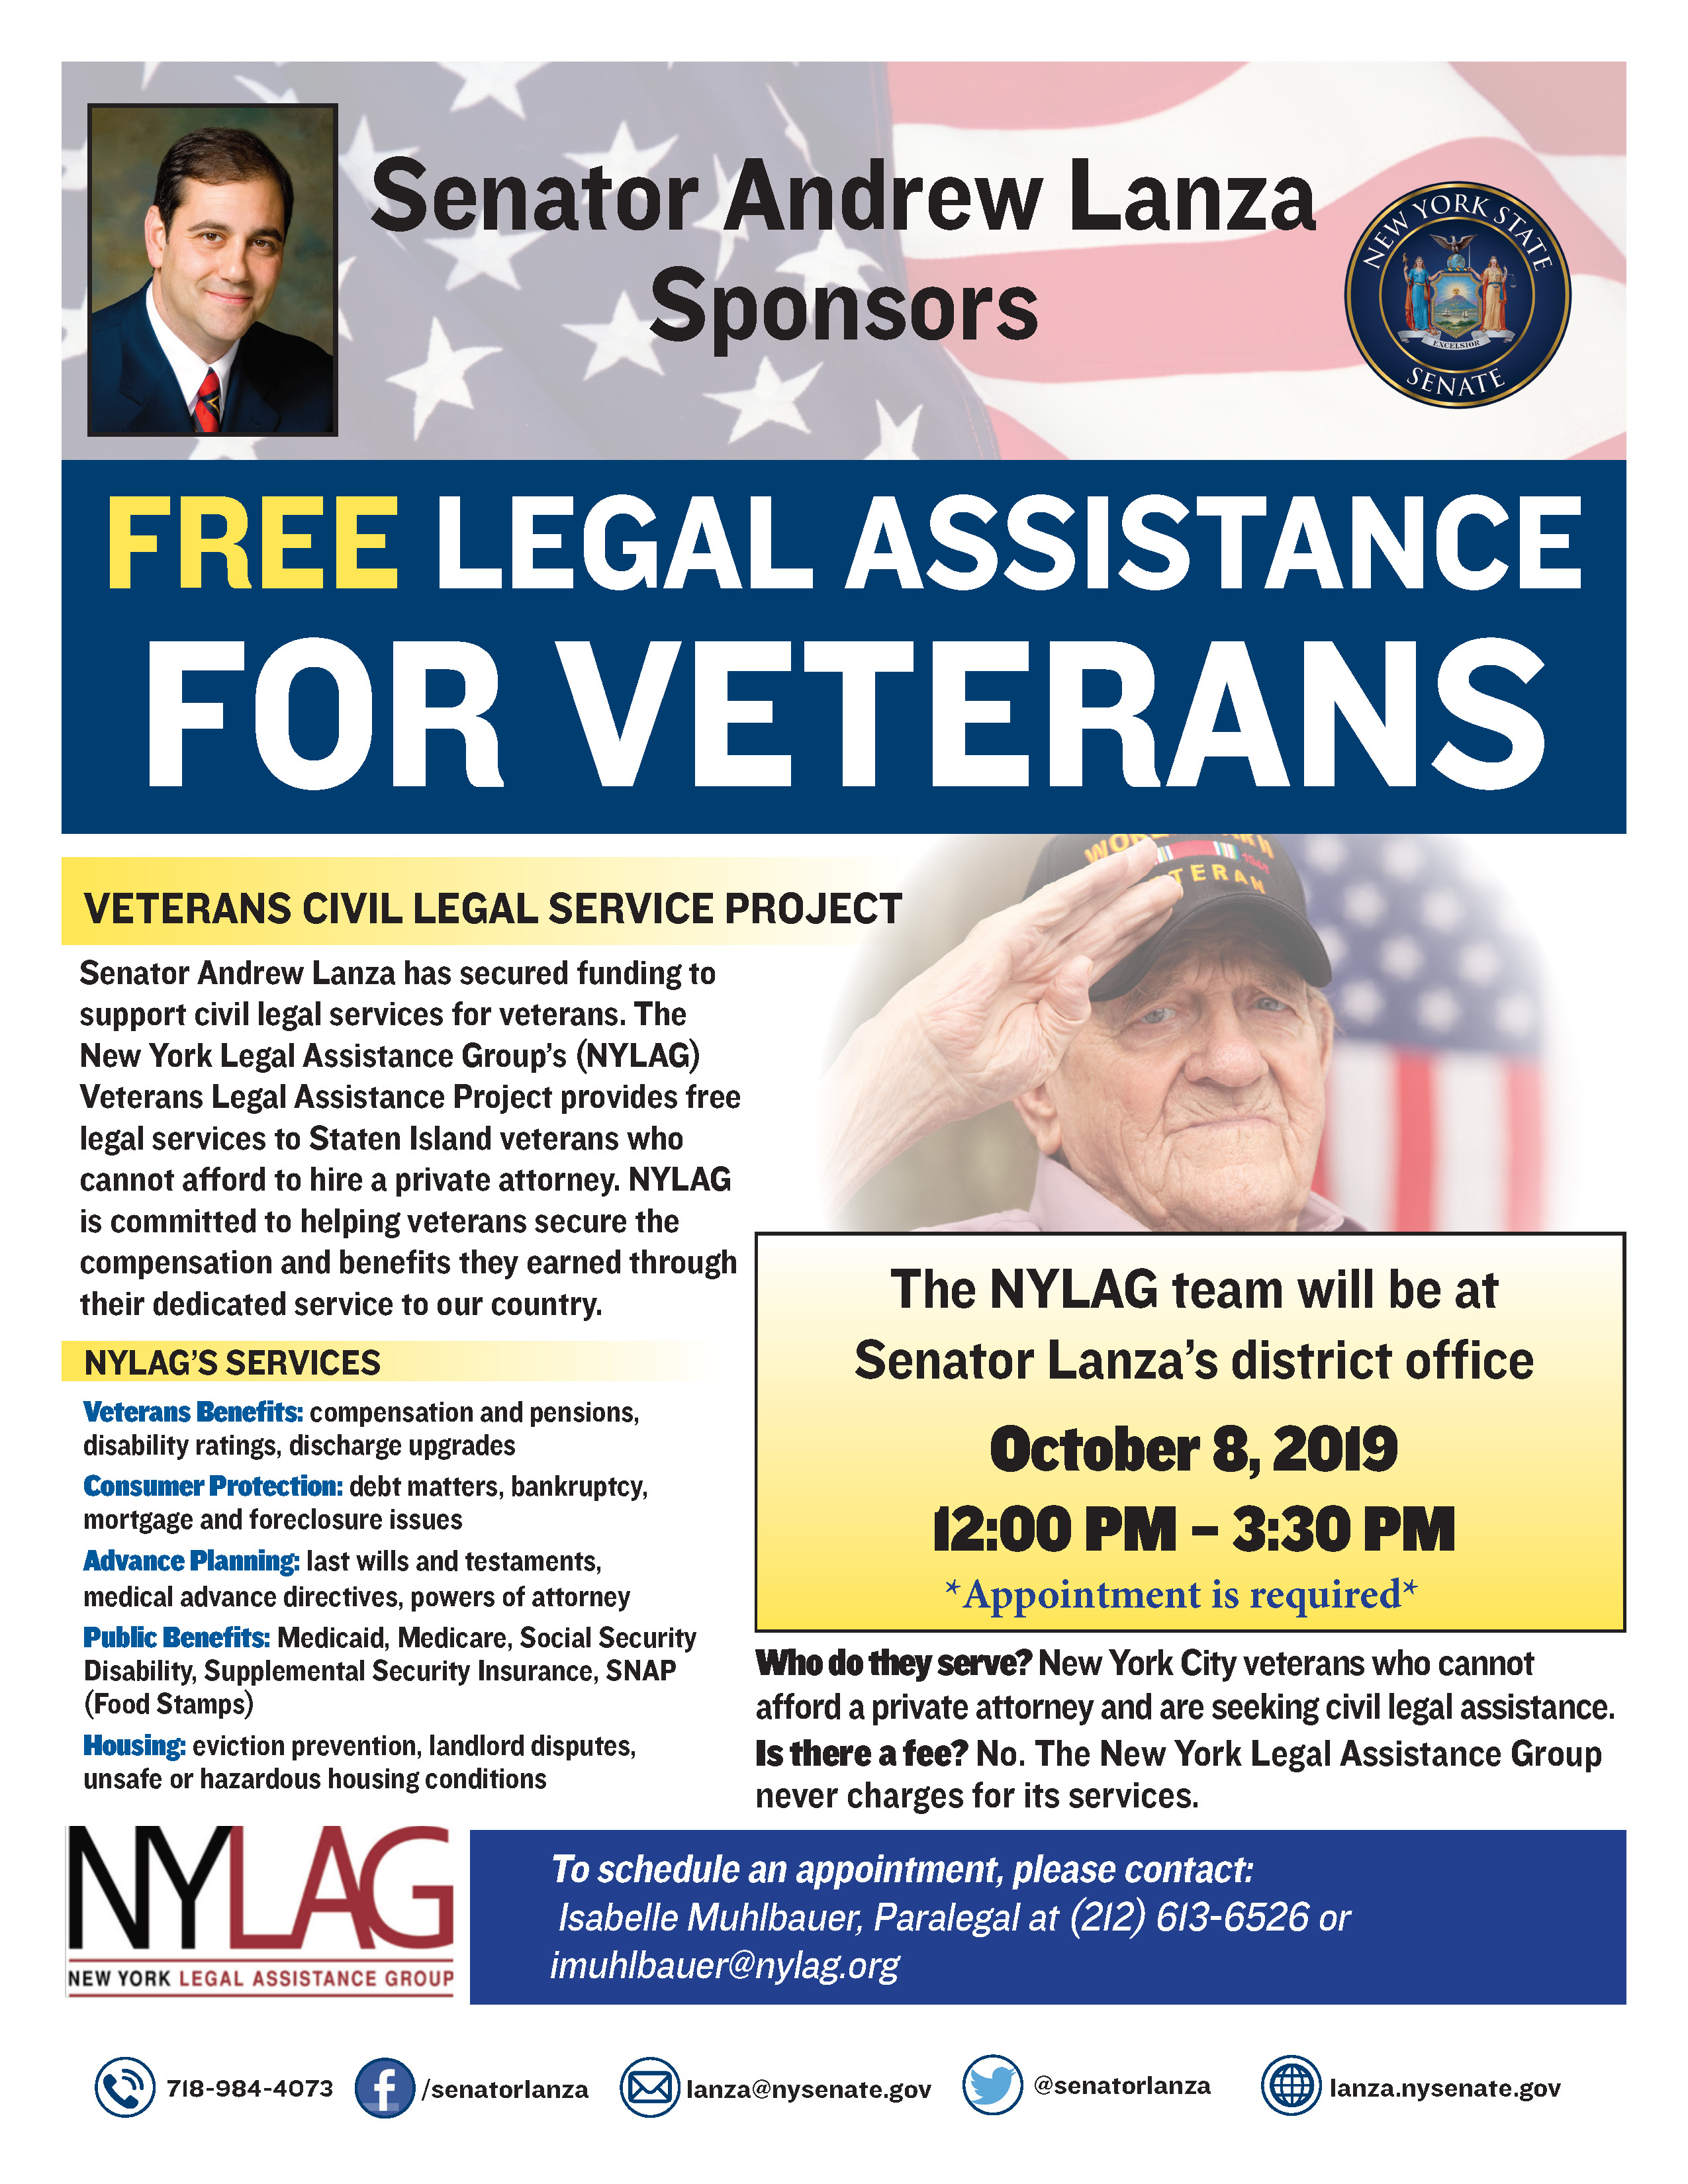 Lanza to host free legal services event for veterans, active duty military and family members